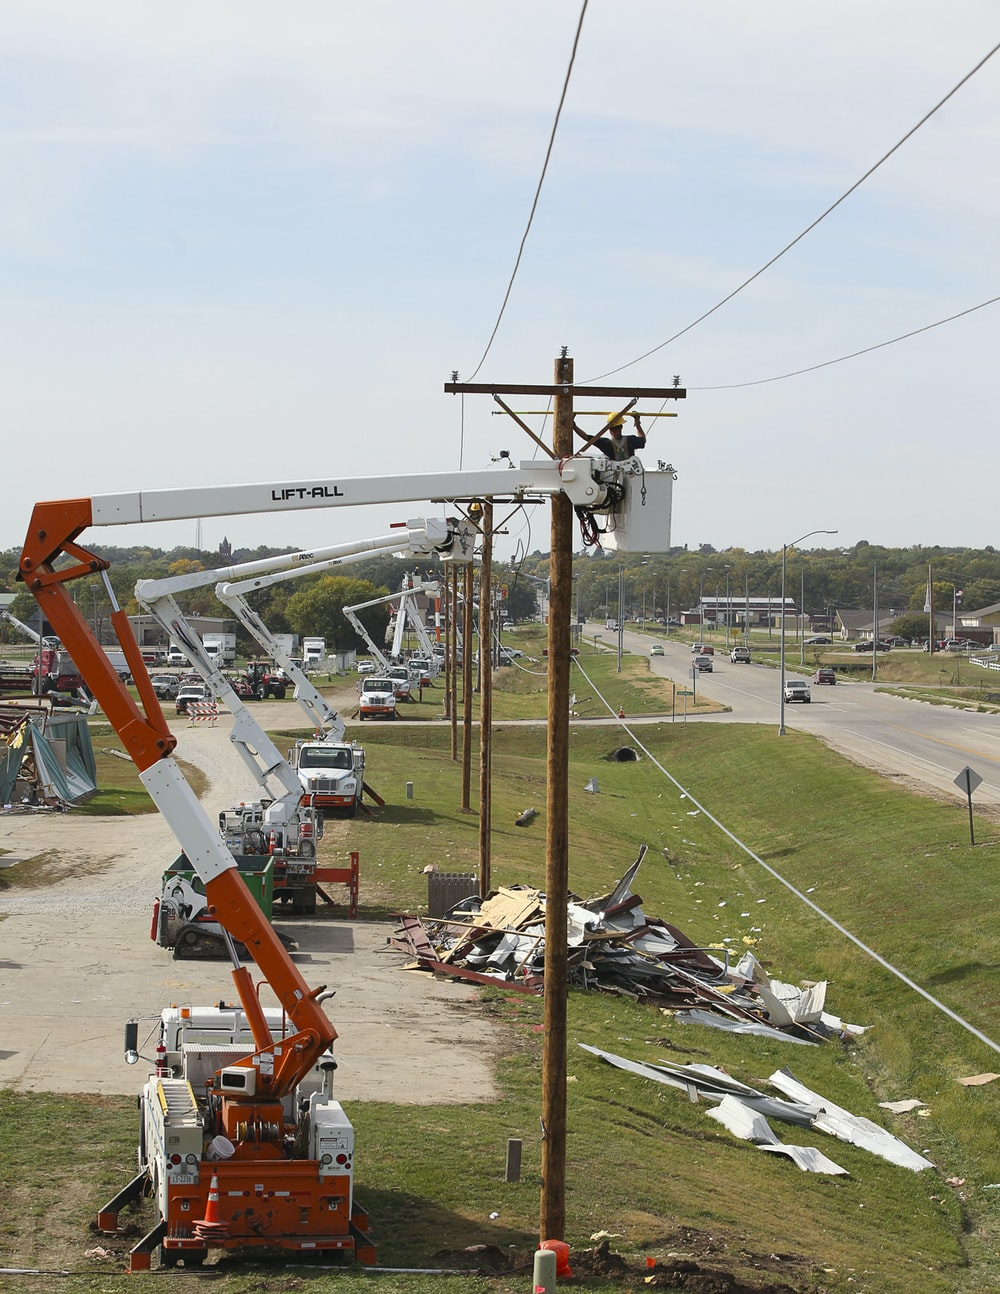 person on bucket crane truck beside utility pole during daytime